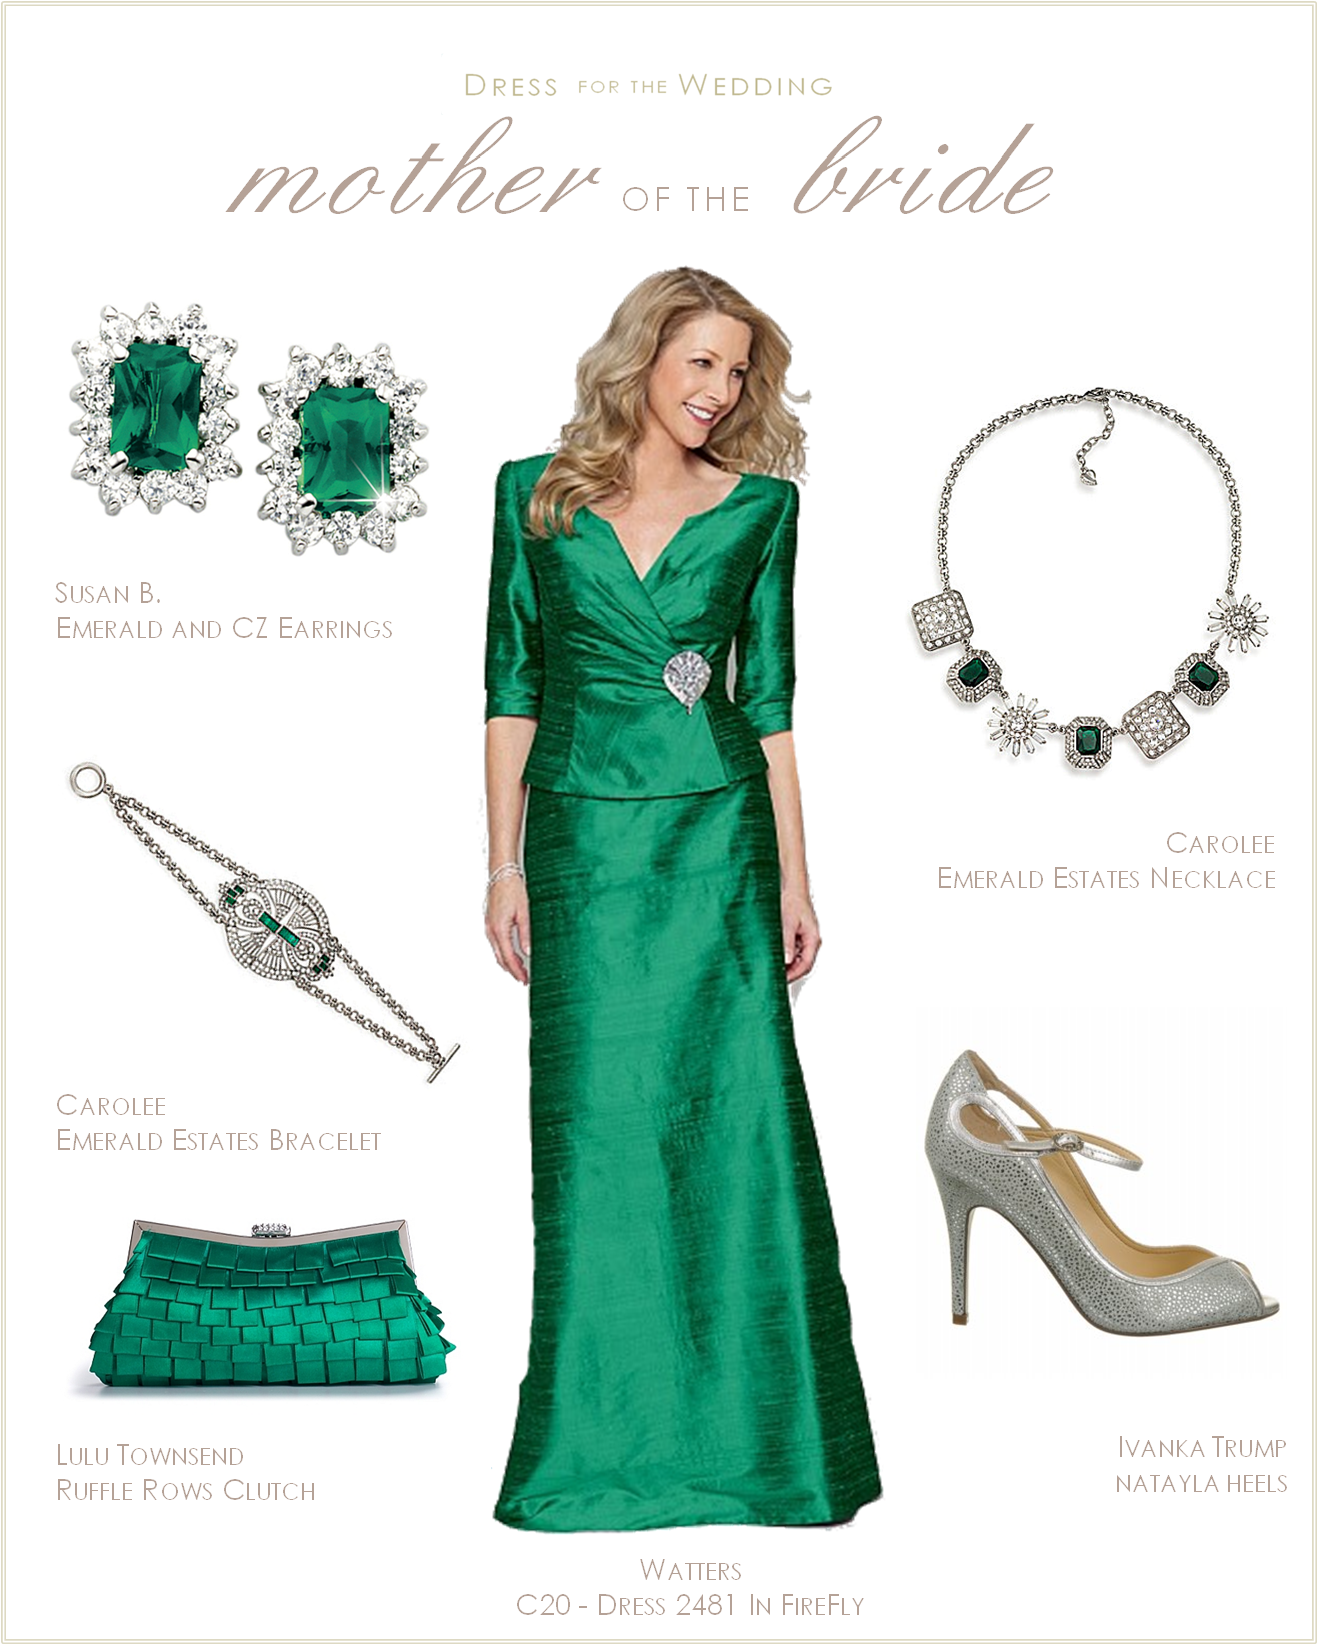 c6b4b4906a Mother of the Bride Dress  Emerald Green. The perfect mother-of-the-bride  dress. Collection 20 gown dress 2481 in Firefly.